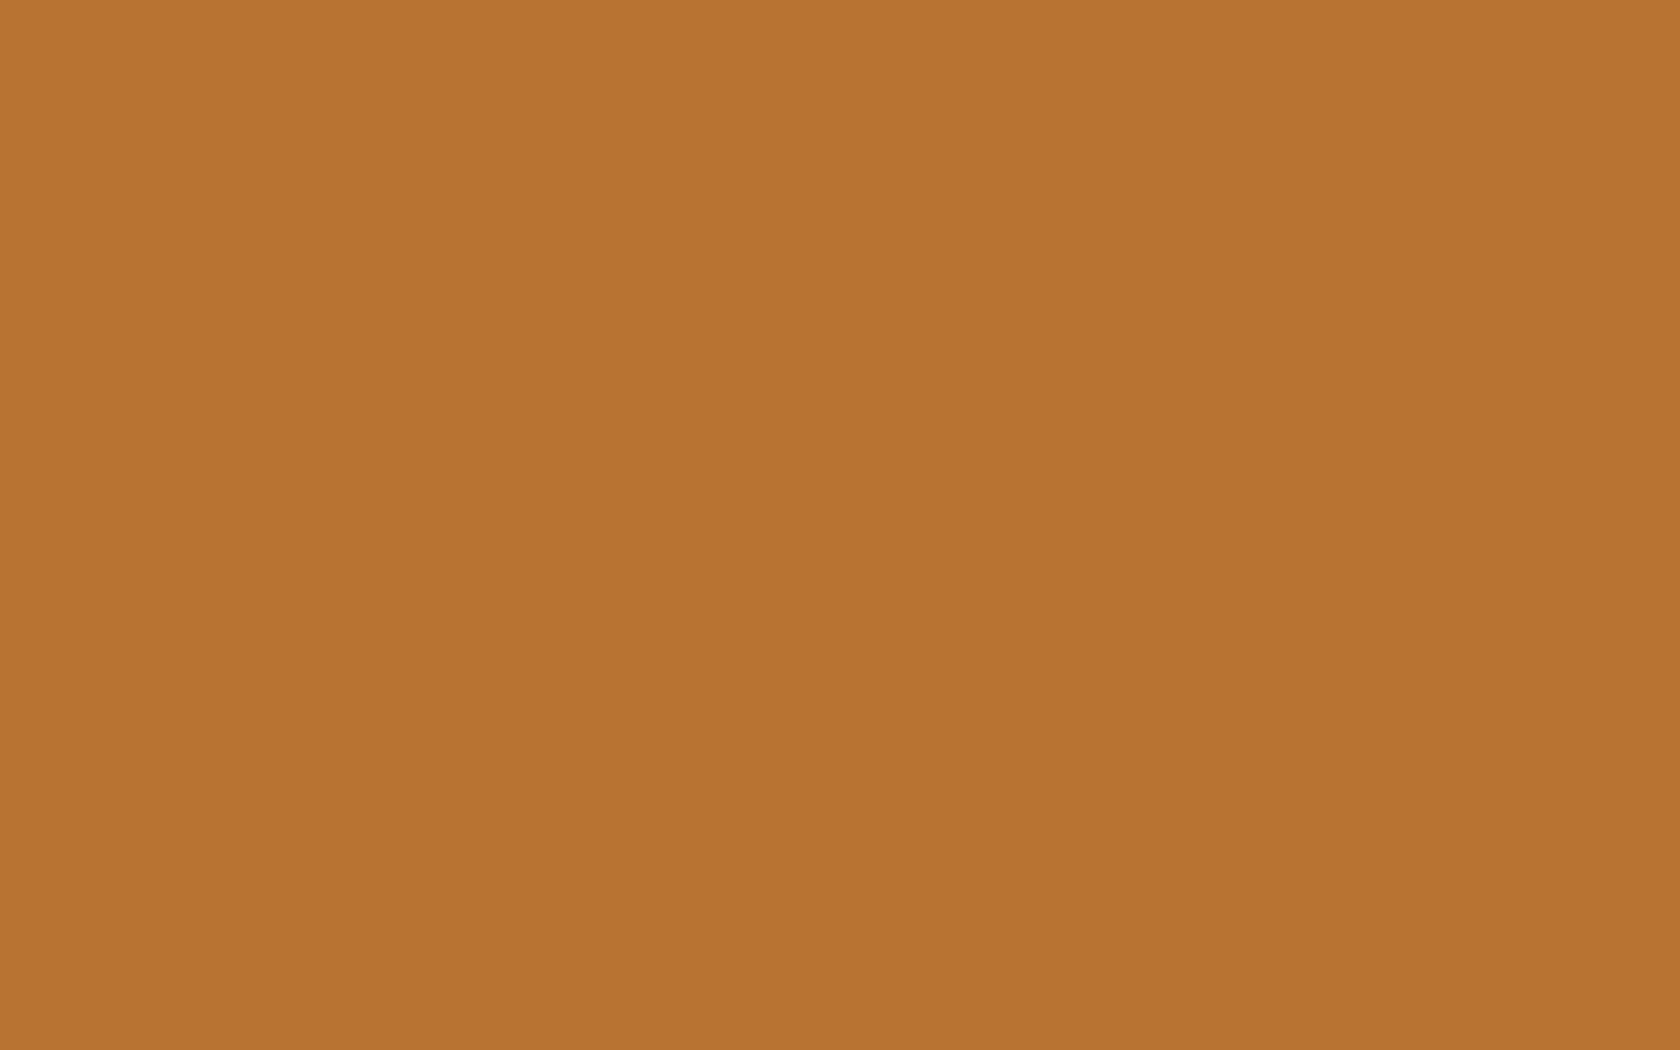 1680x1050 Copper Solid Color Background